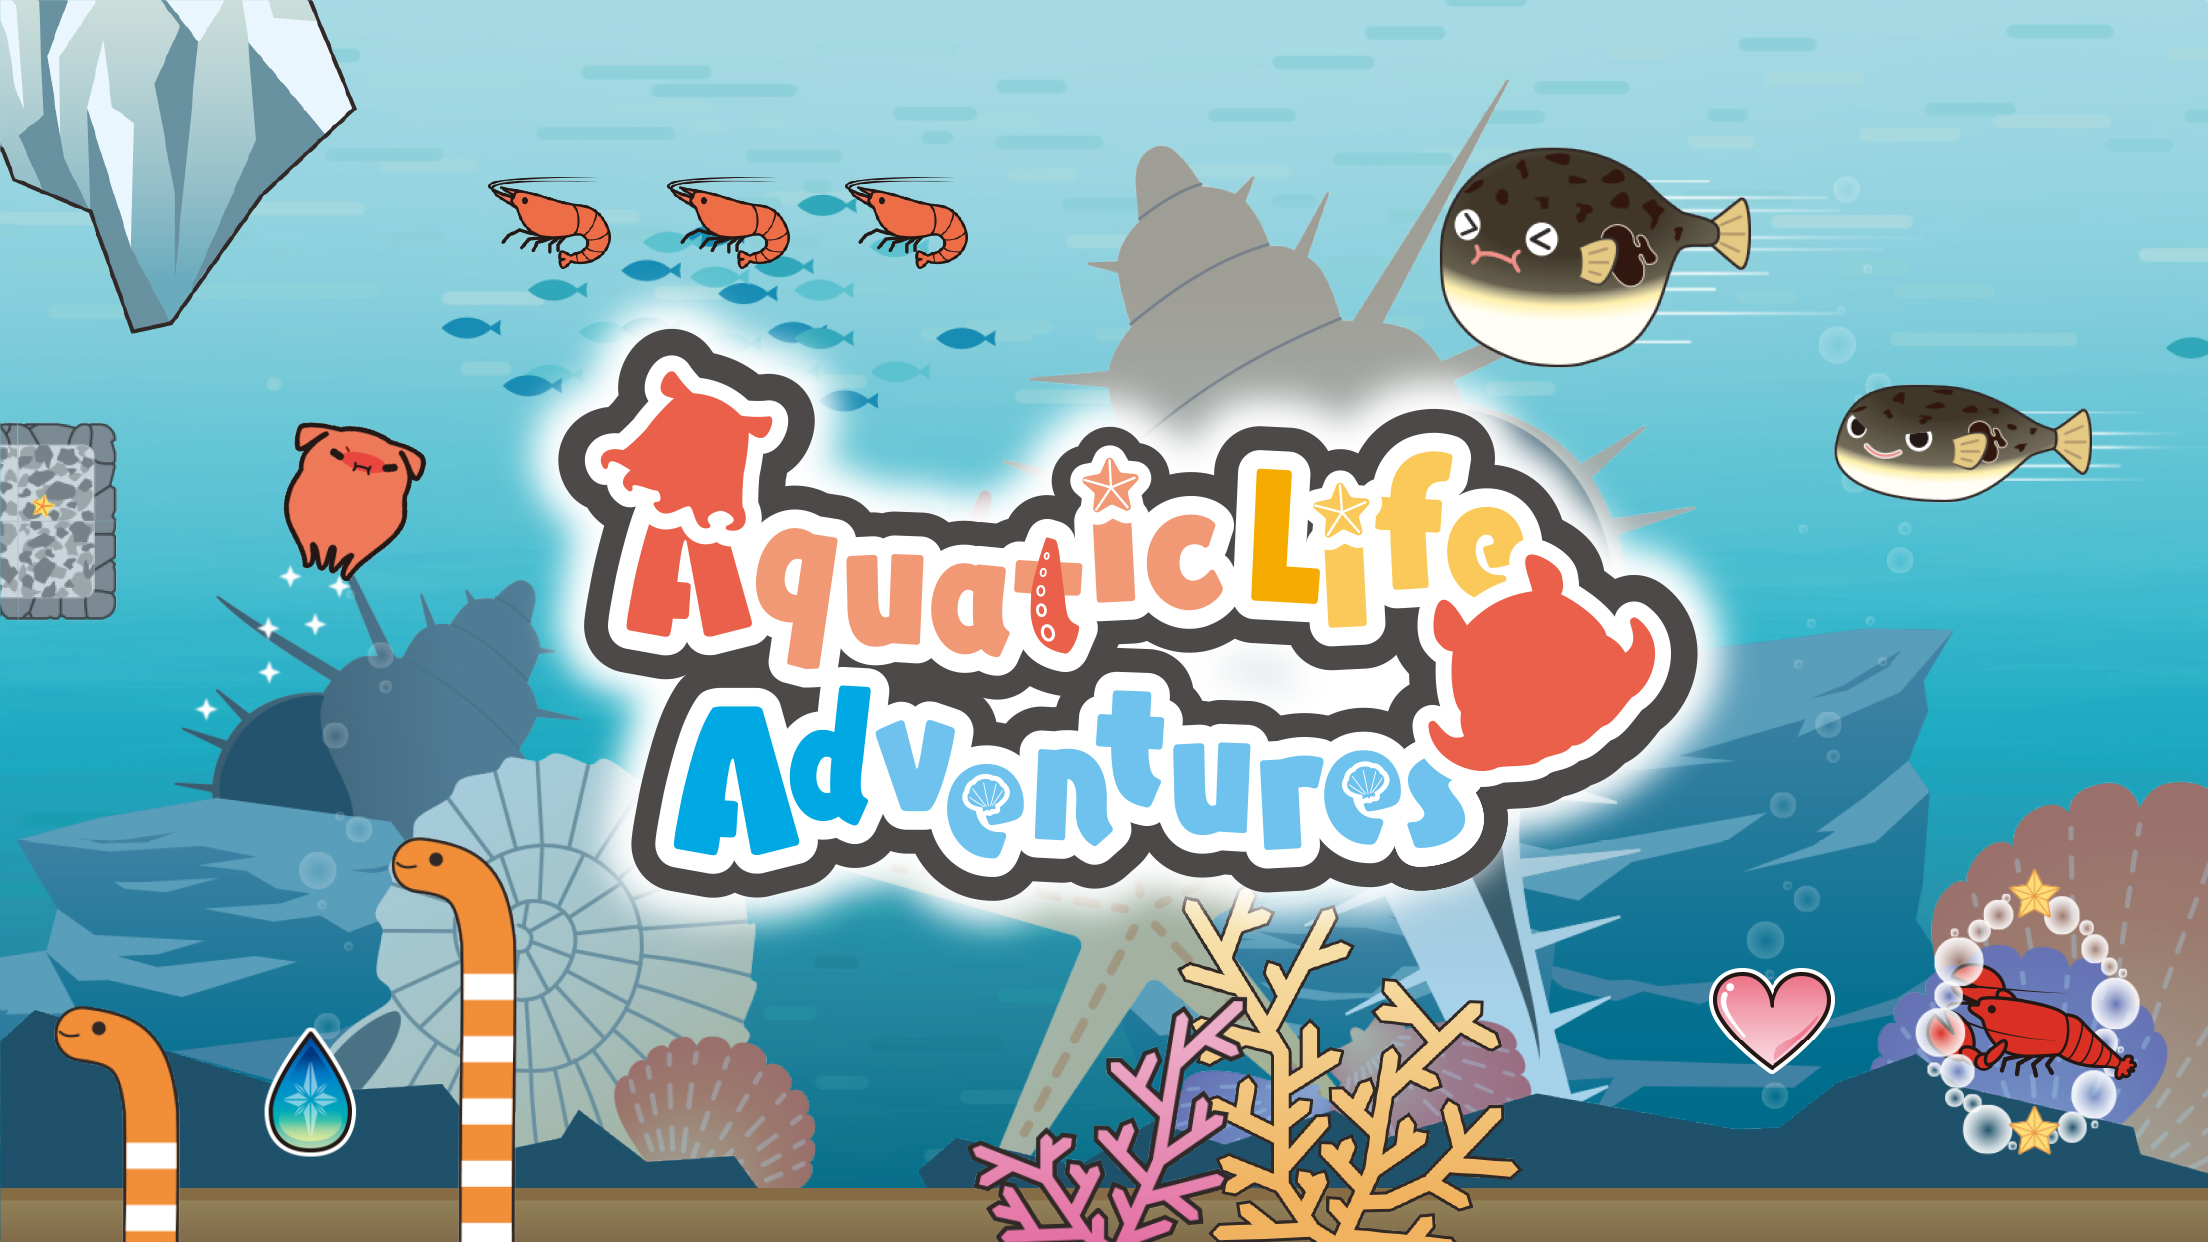 Aquatic life adventure